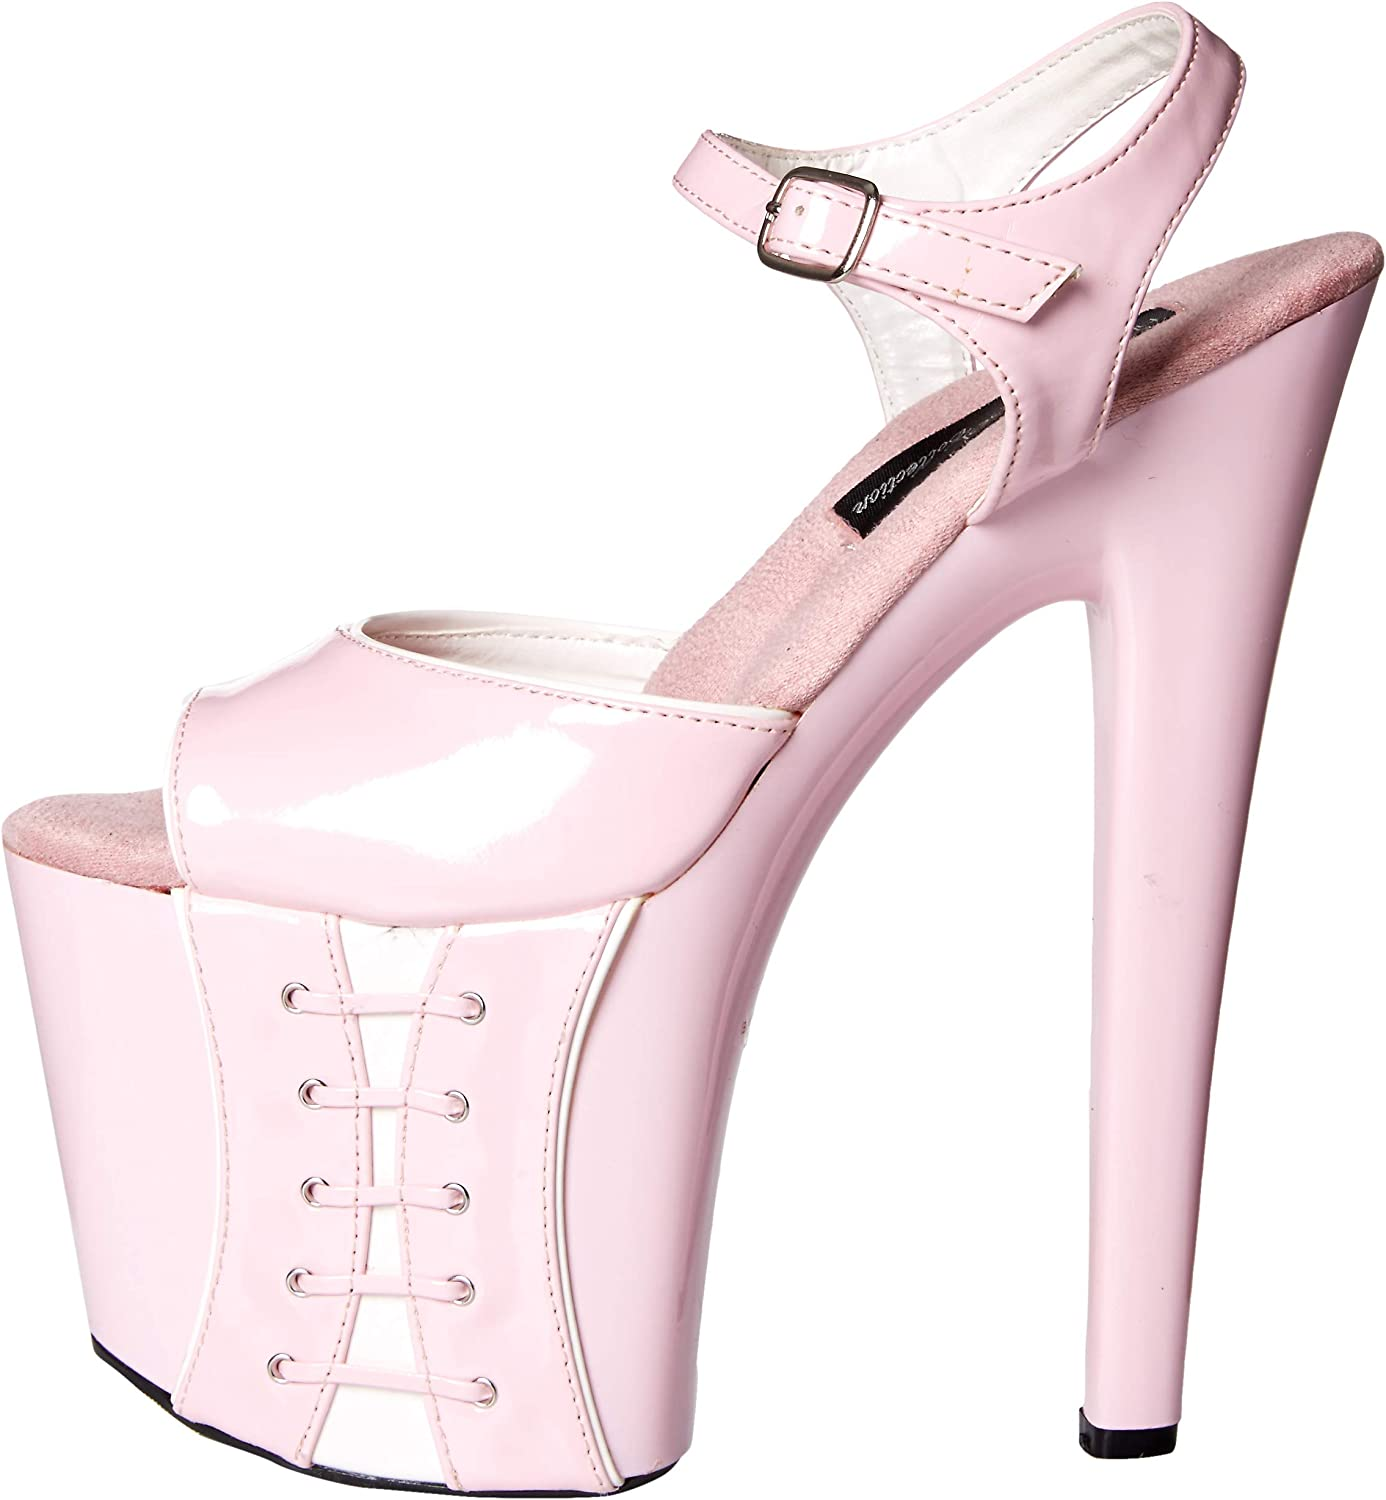 The Highest Heel Womens Corset-21 Platform Sandal